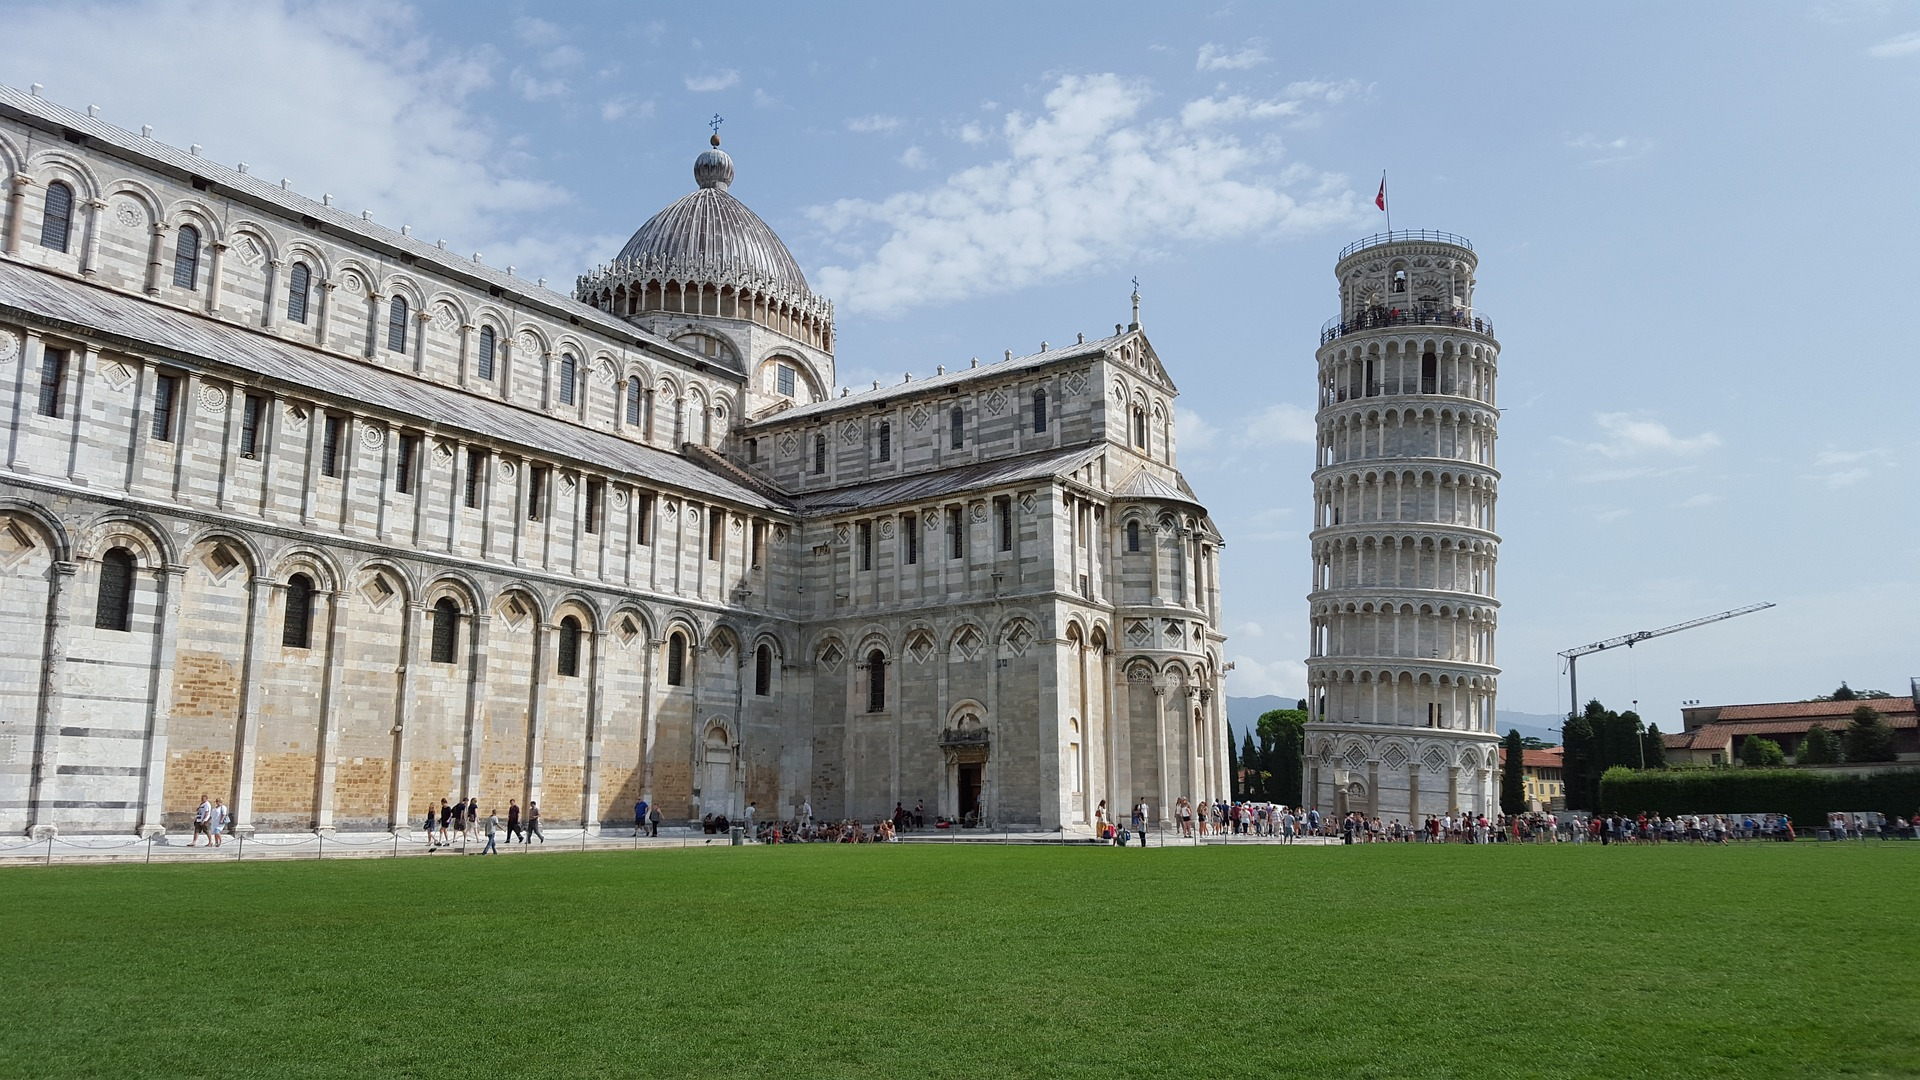 the Leaning Tower of Pisa and nearby buildings